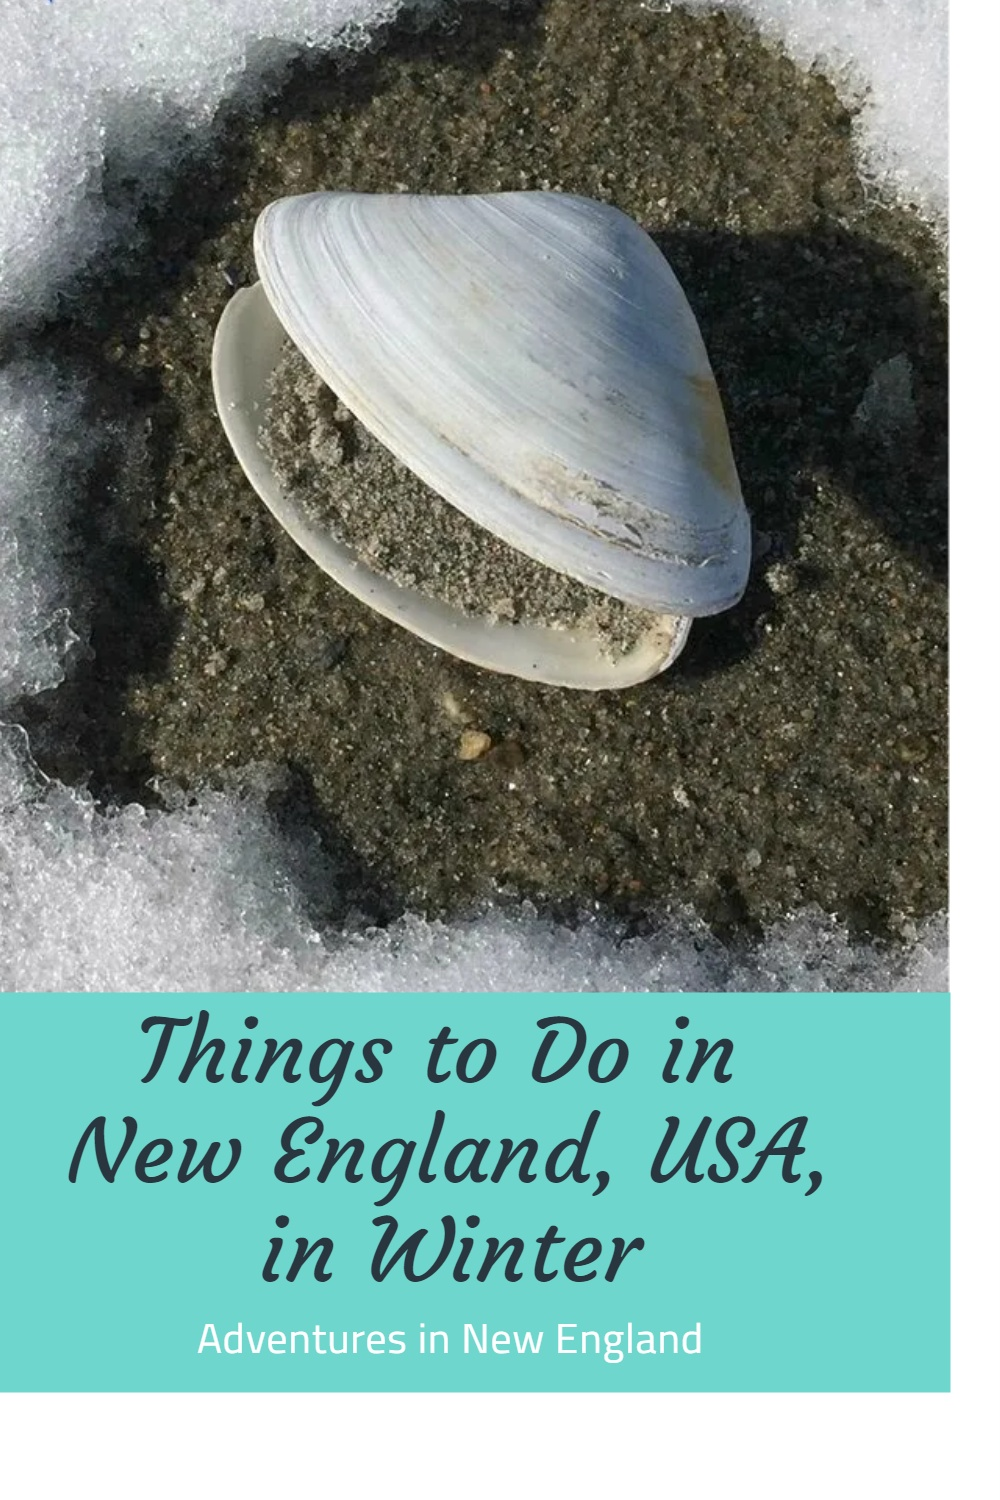 Get ahead of the winter blues by planning the perfect charmingly cozy winter getaway in New England, USA. #wintergetaway #NewEnglandUSA